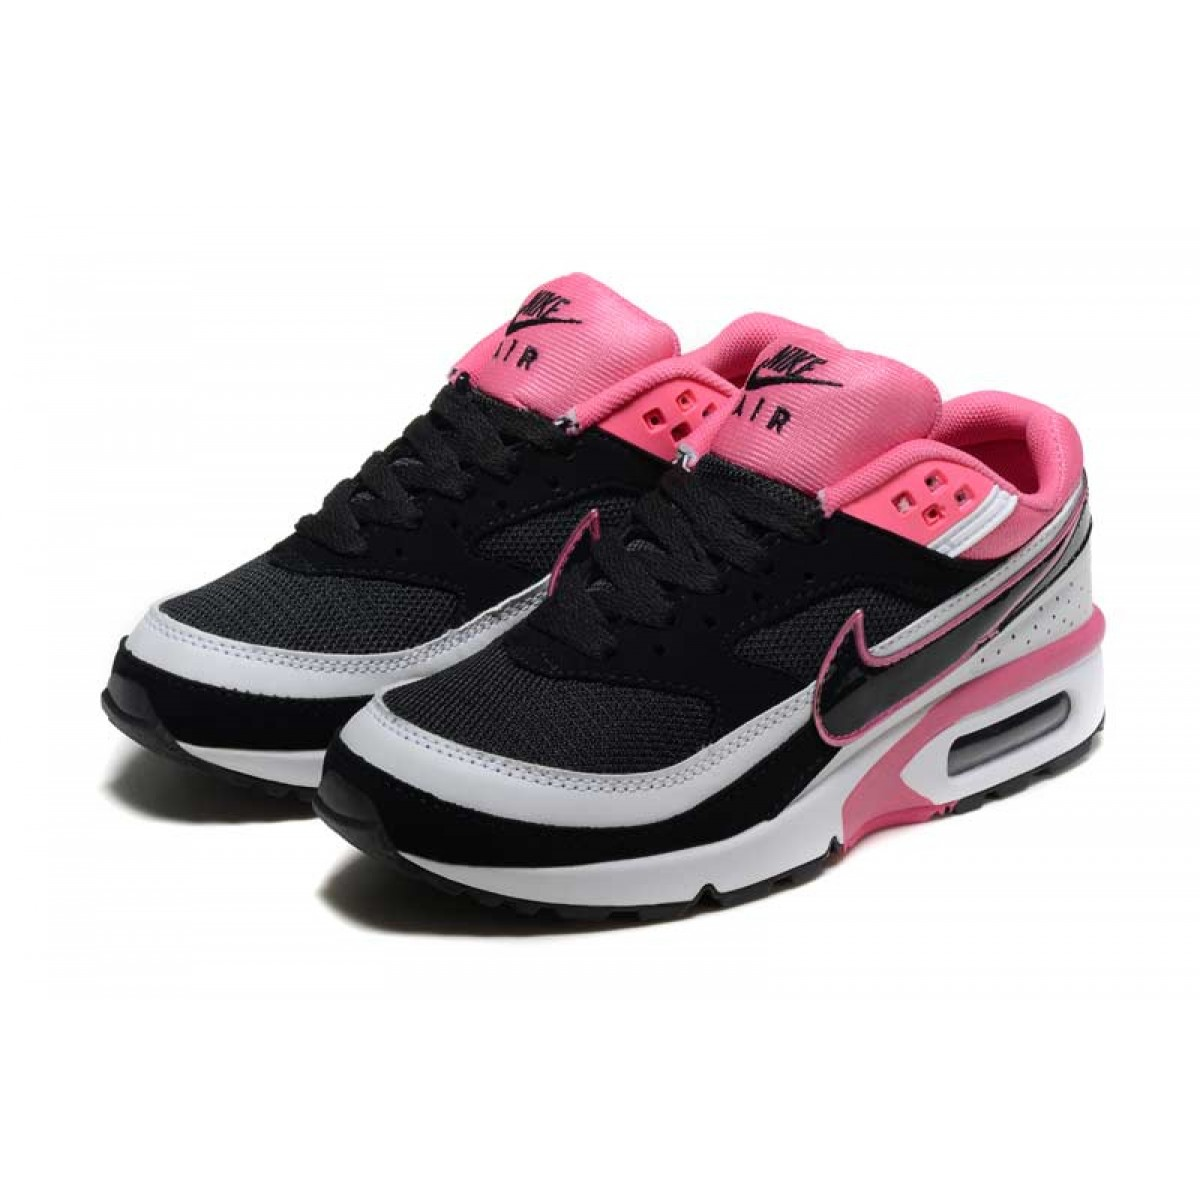 nike air max bw femme soldes